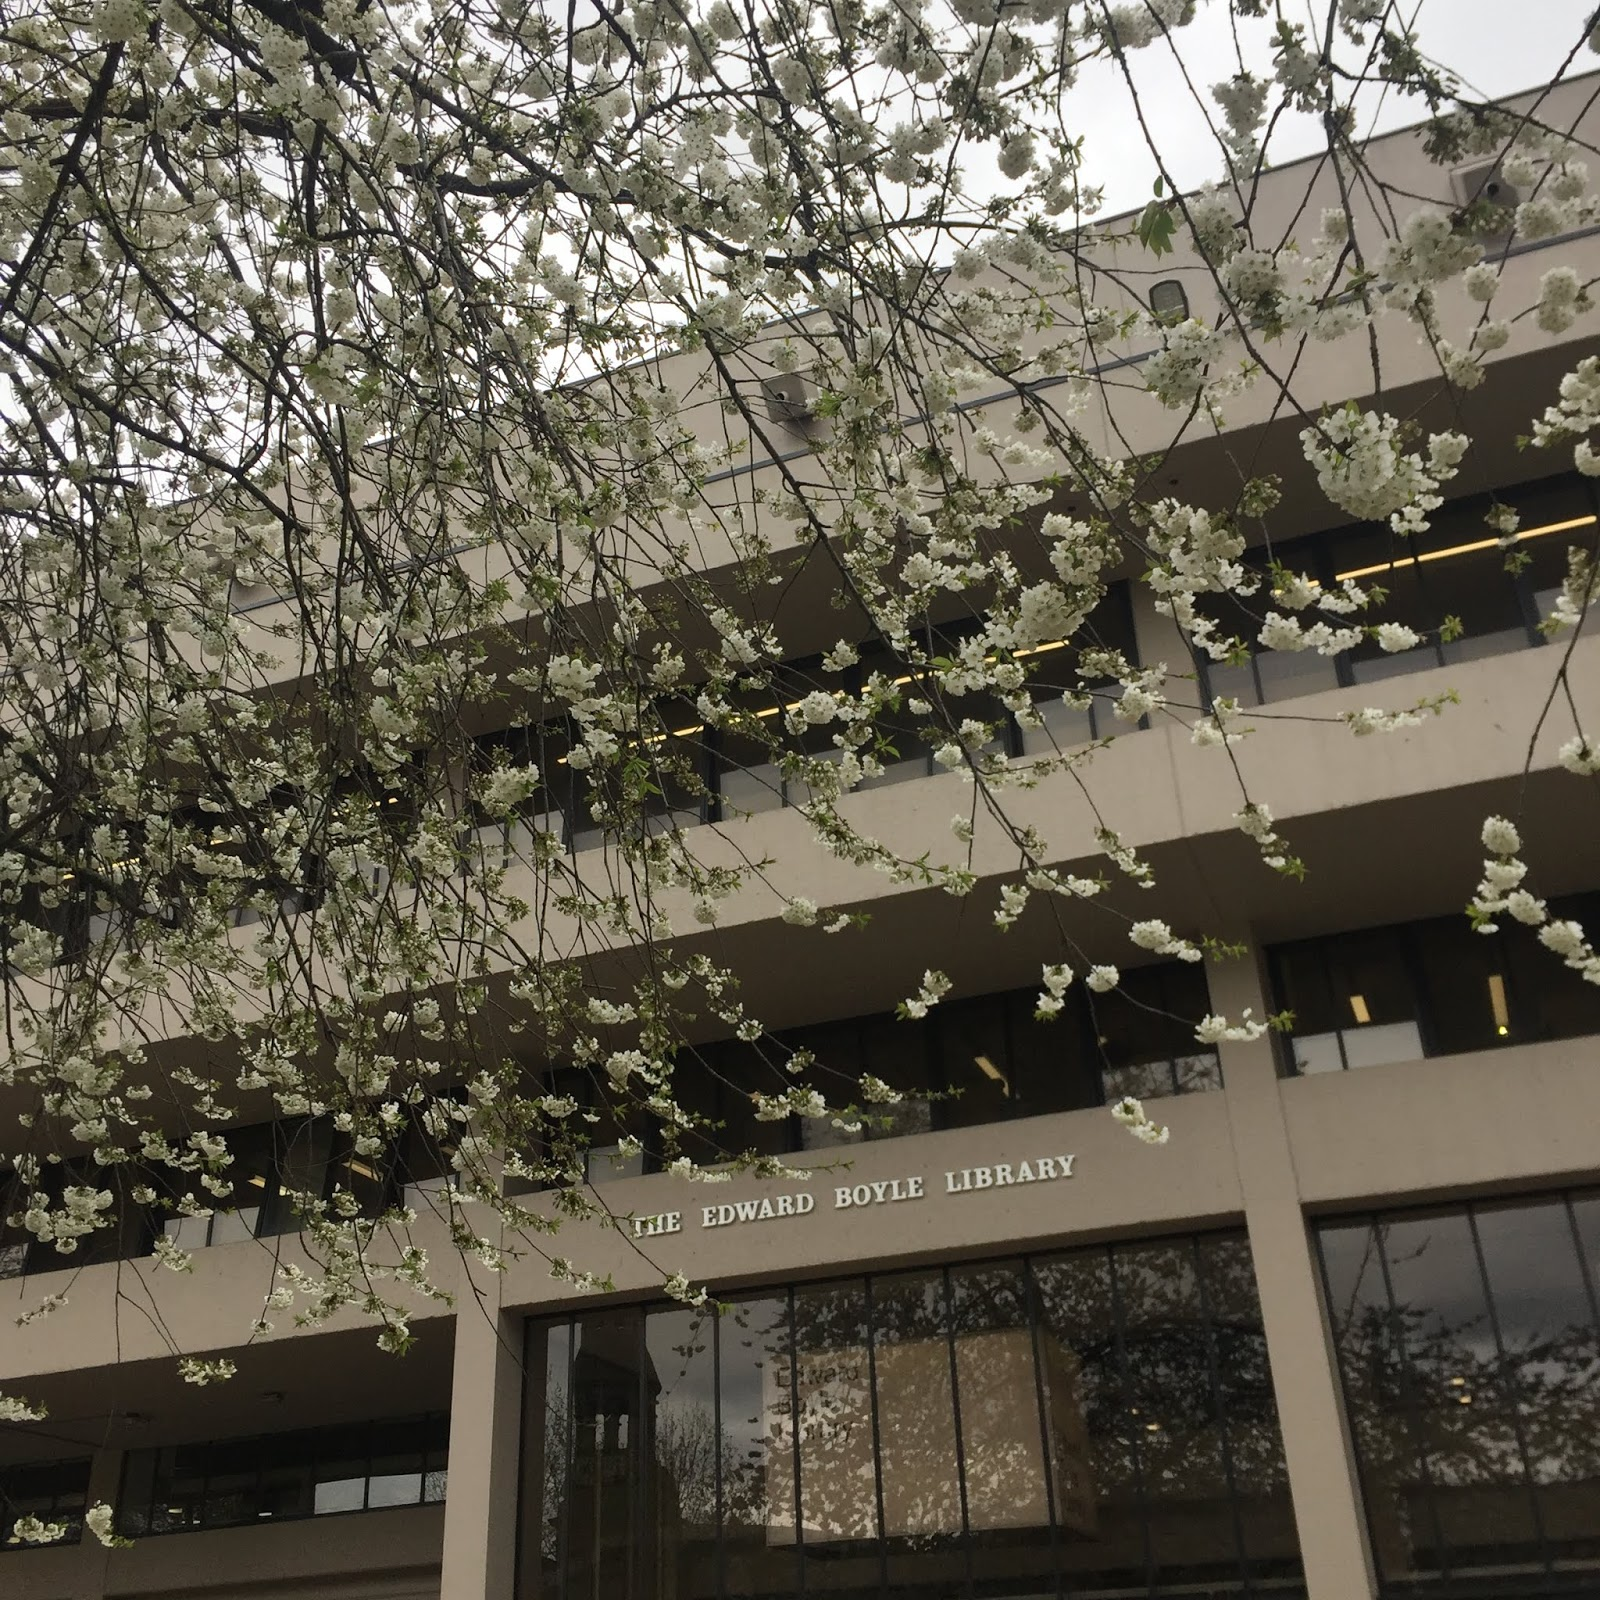 Blossom and Edward Boyle Library